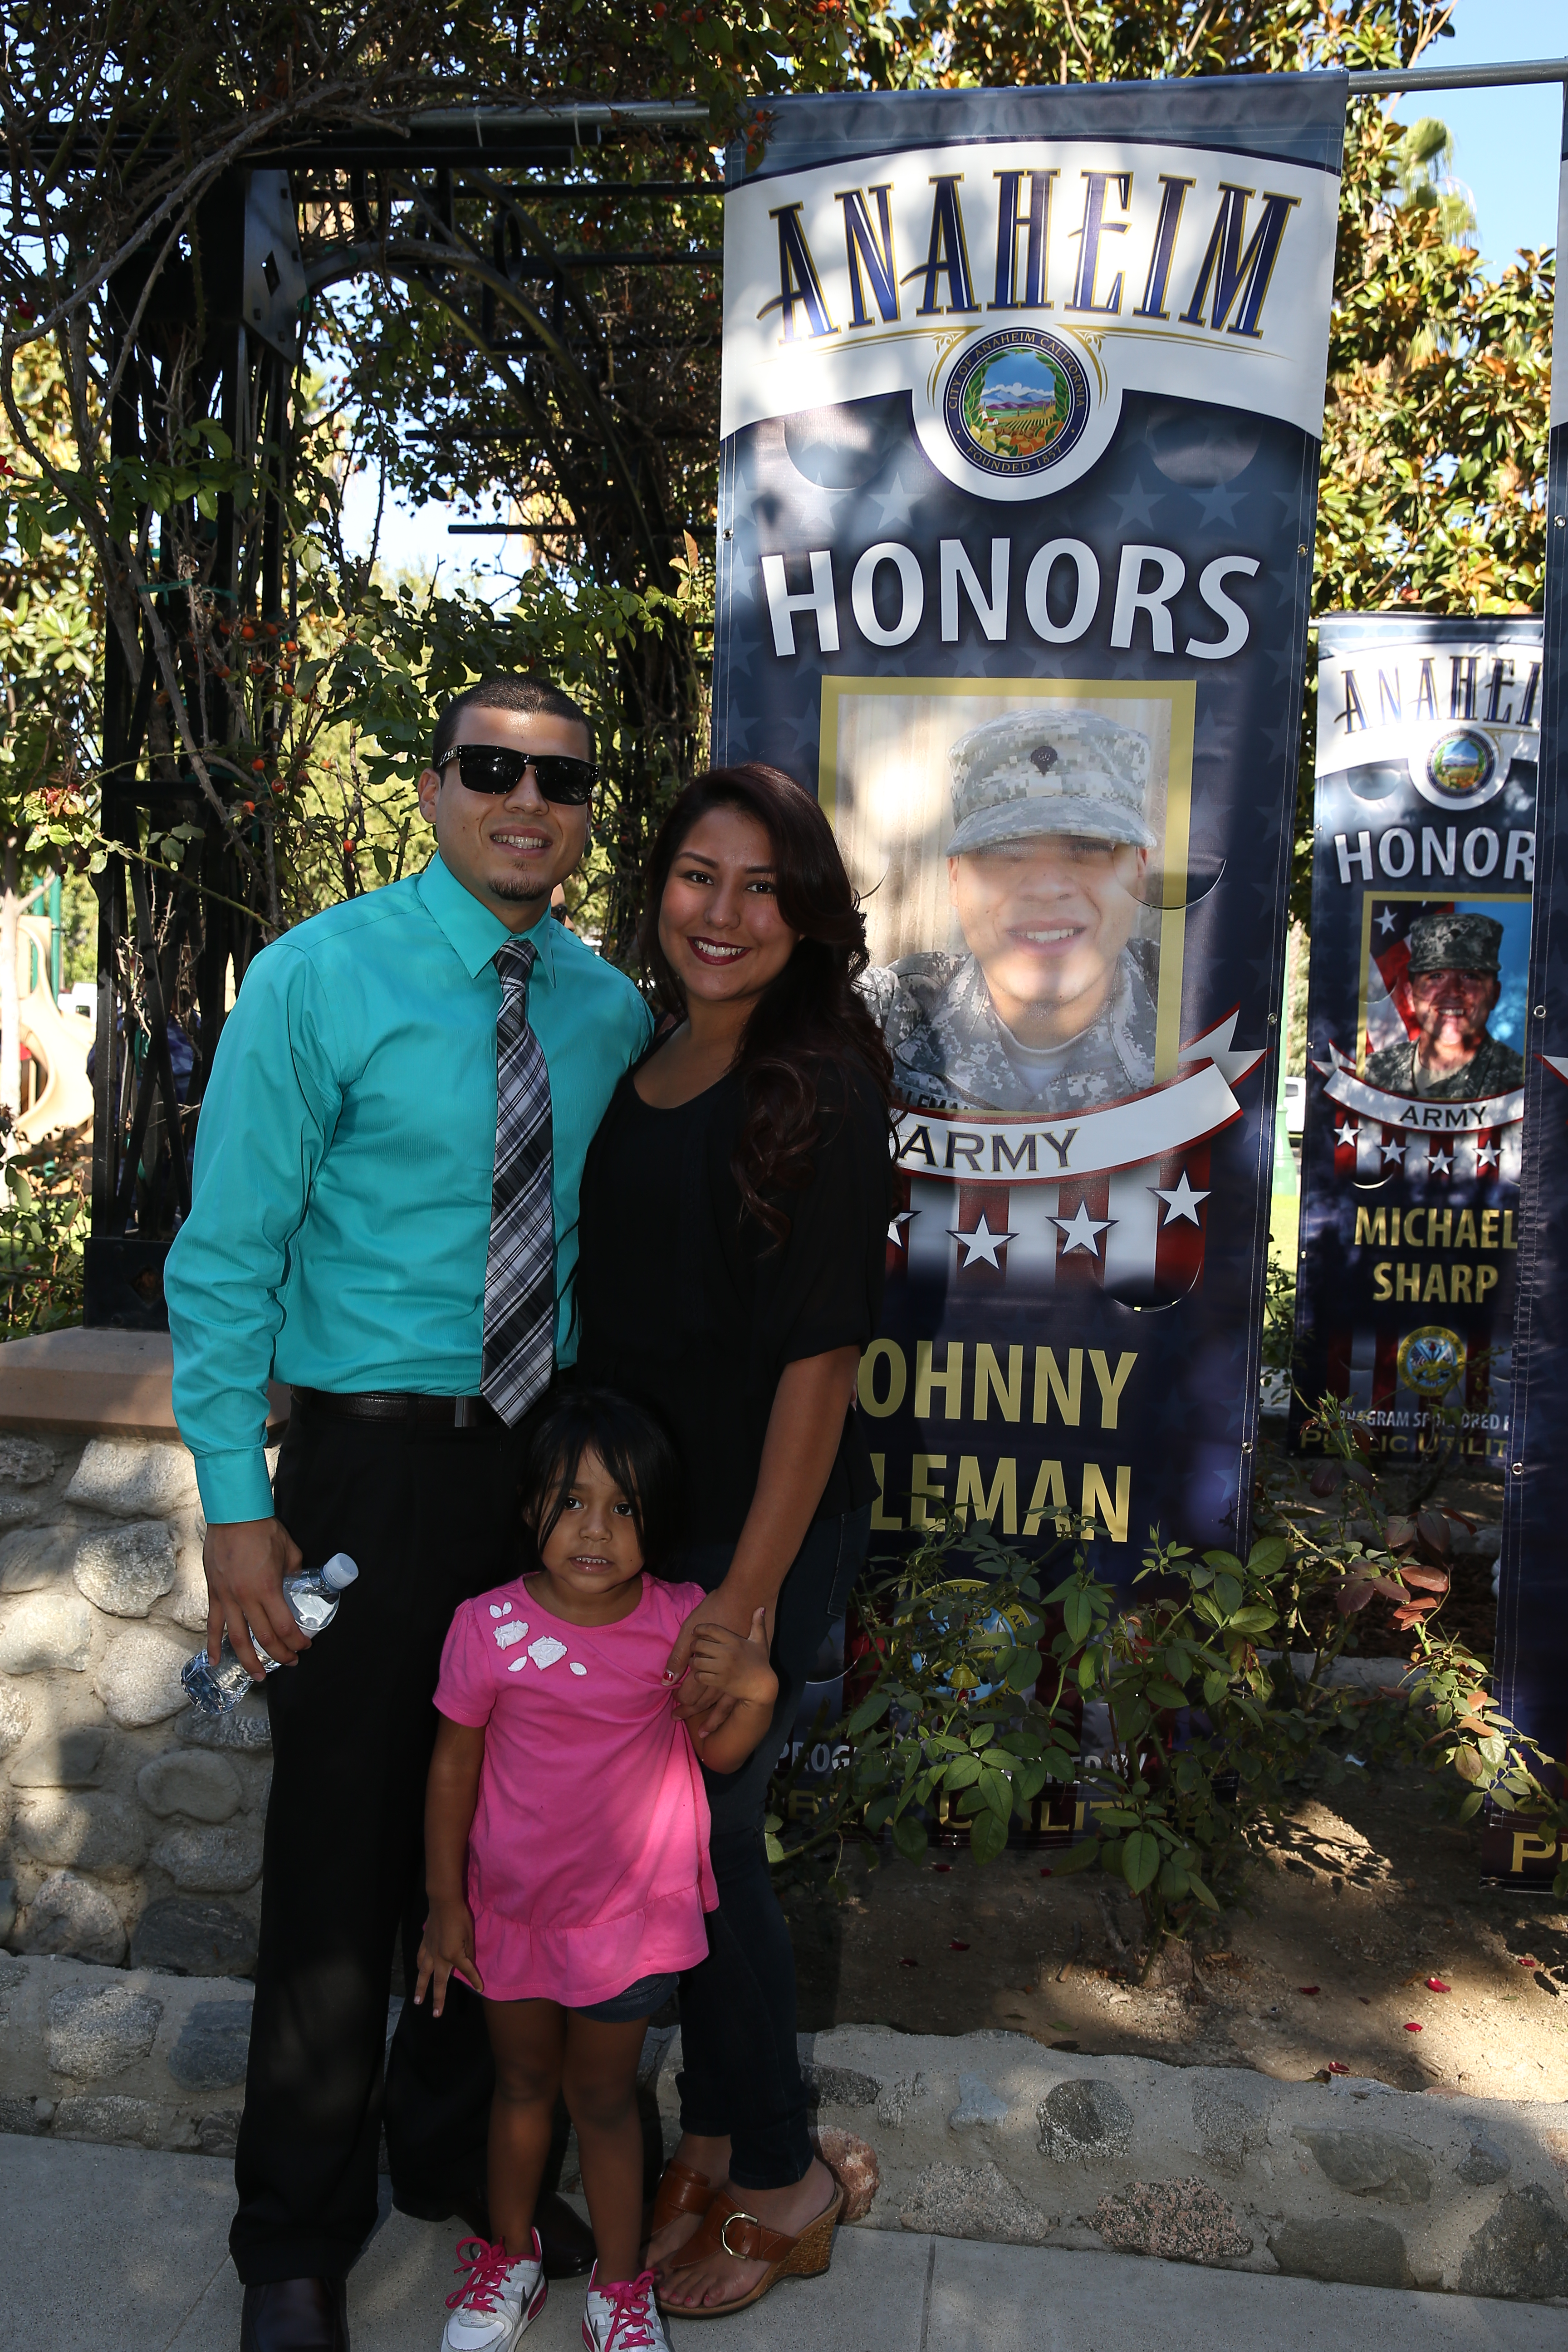 Banner Ceremony - September 29, 2014